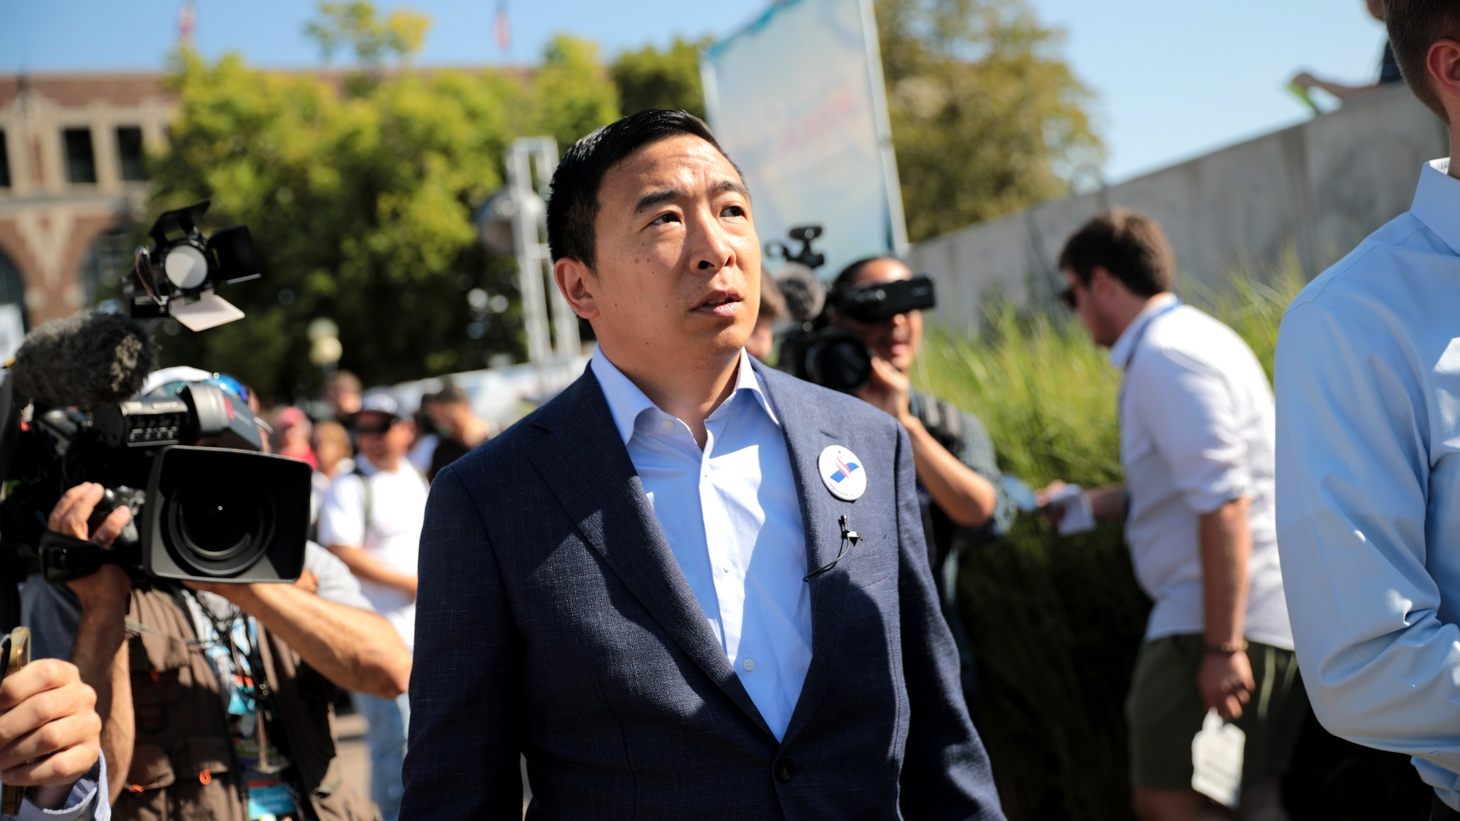 Andrew Yang speaking with supporters at the Des Moines Register's Political Soapbox at the 2019 Iowa State Fair in Des Moines, Iowa.